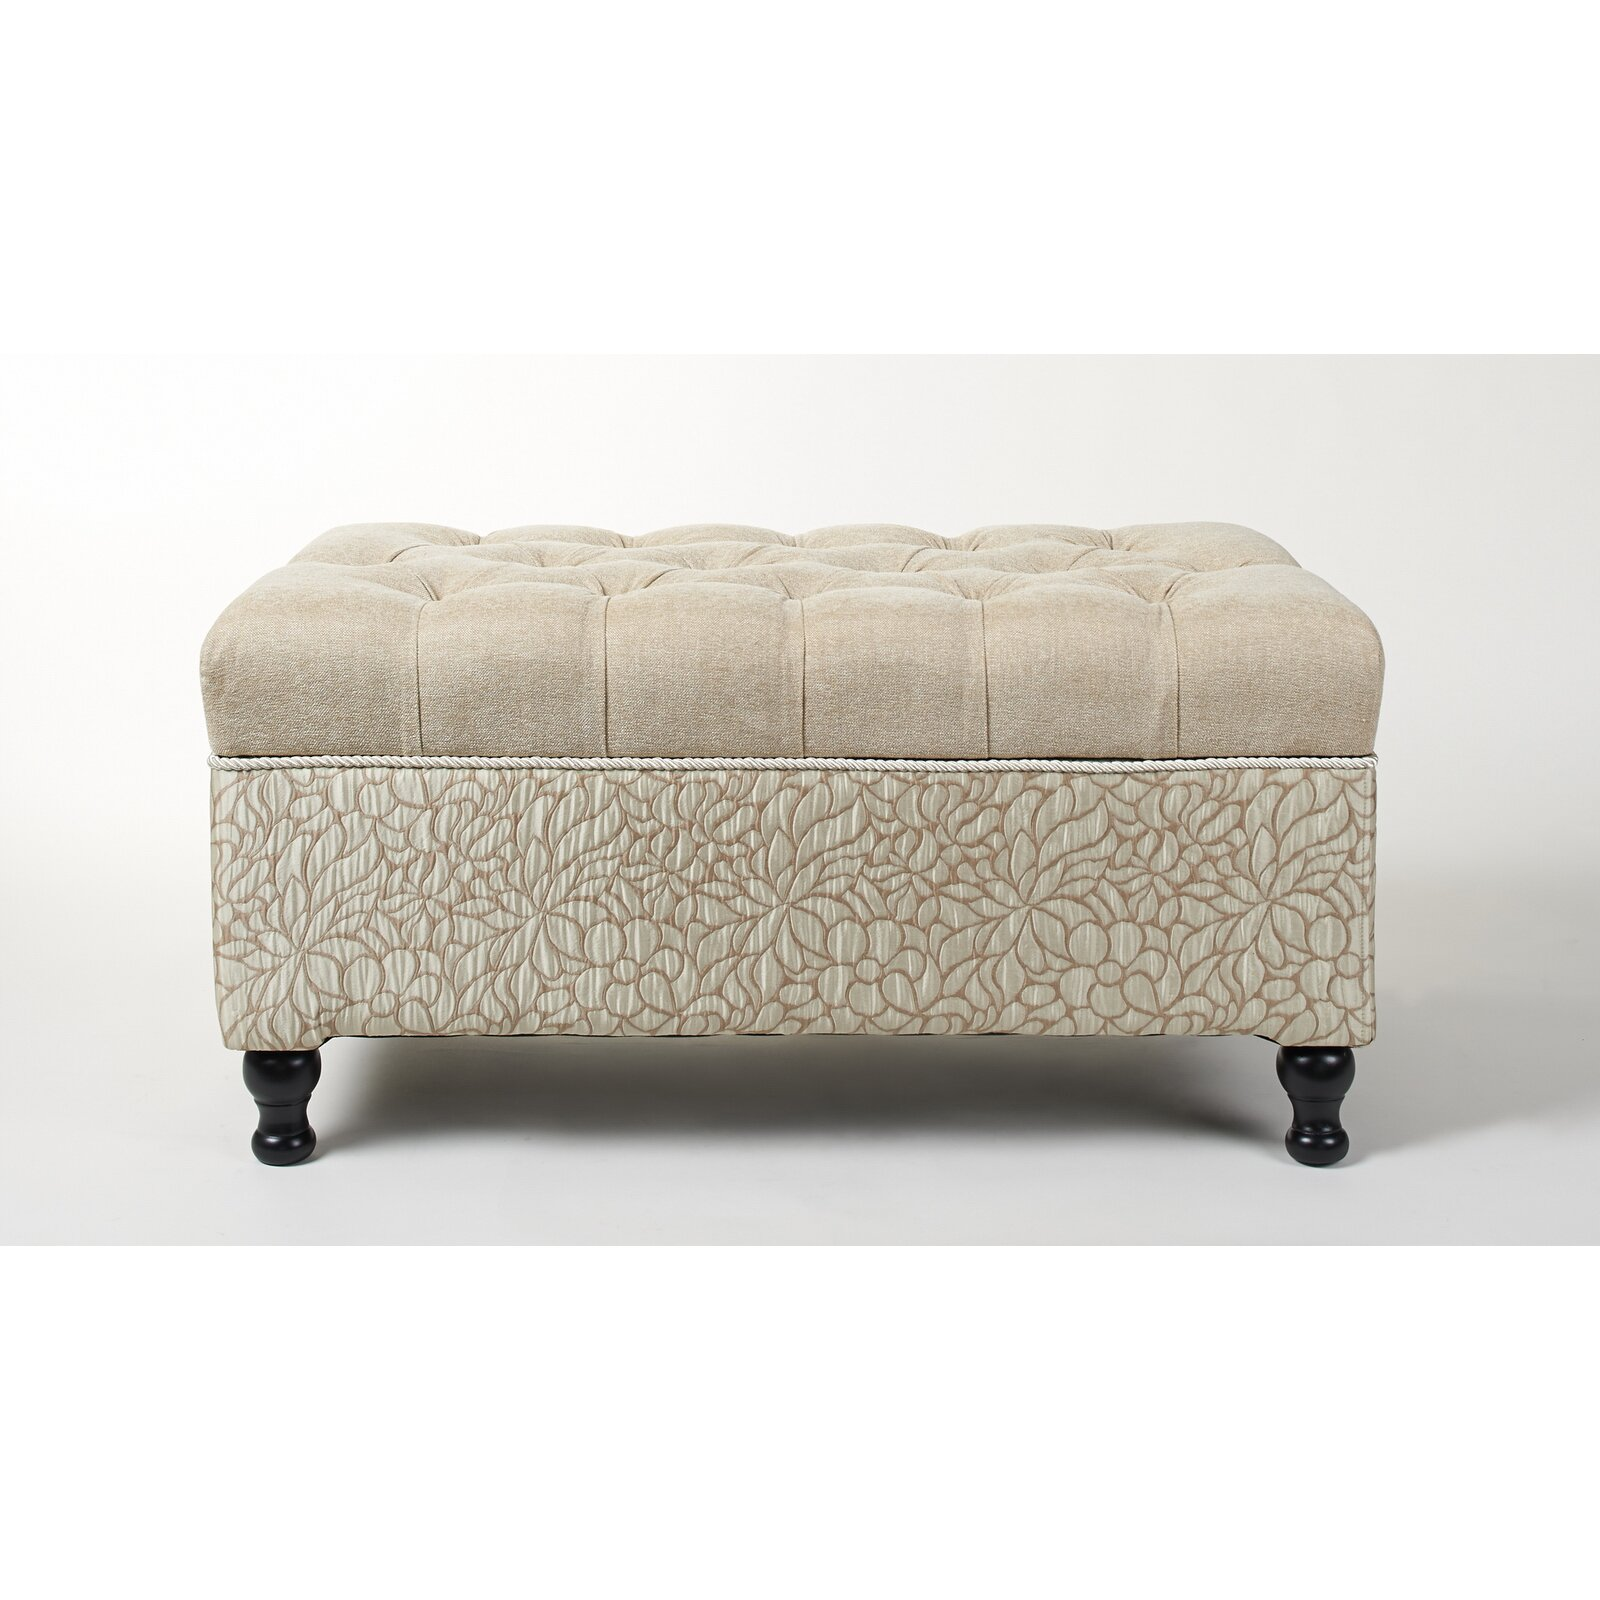 Jennifer taylor naomi upholstered storage bedroom bench Upholstered benches